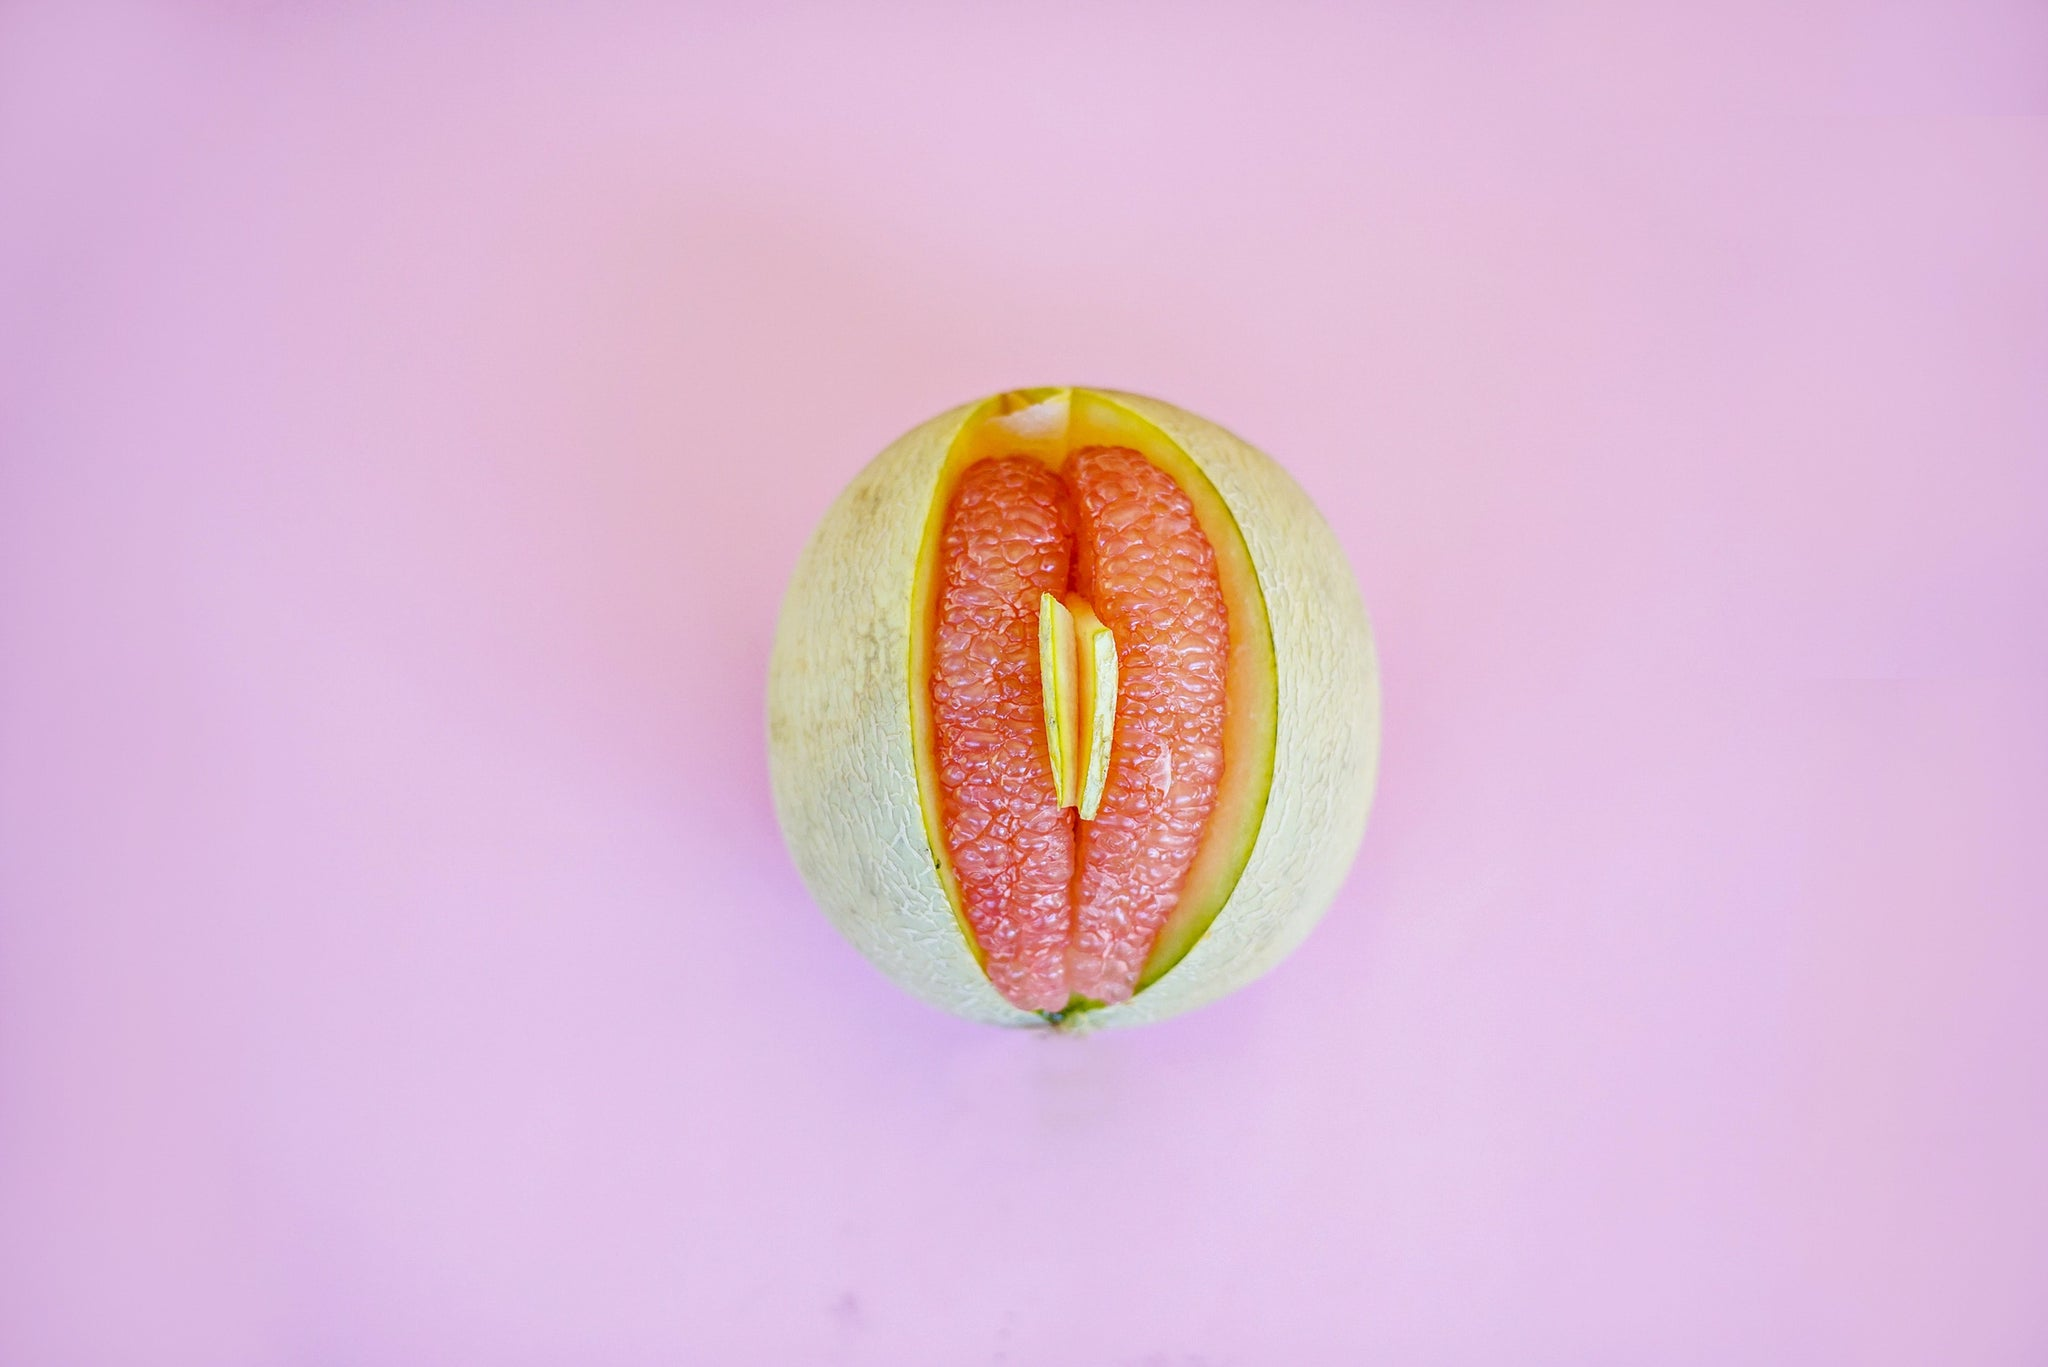 Let's Talk About Sex, Baby! The Female Orgasm and Pelvic Floor Physical Therapy